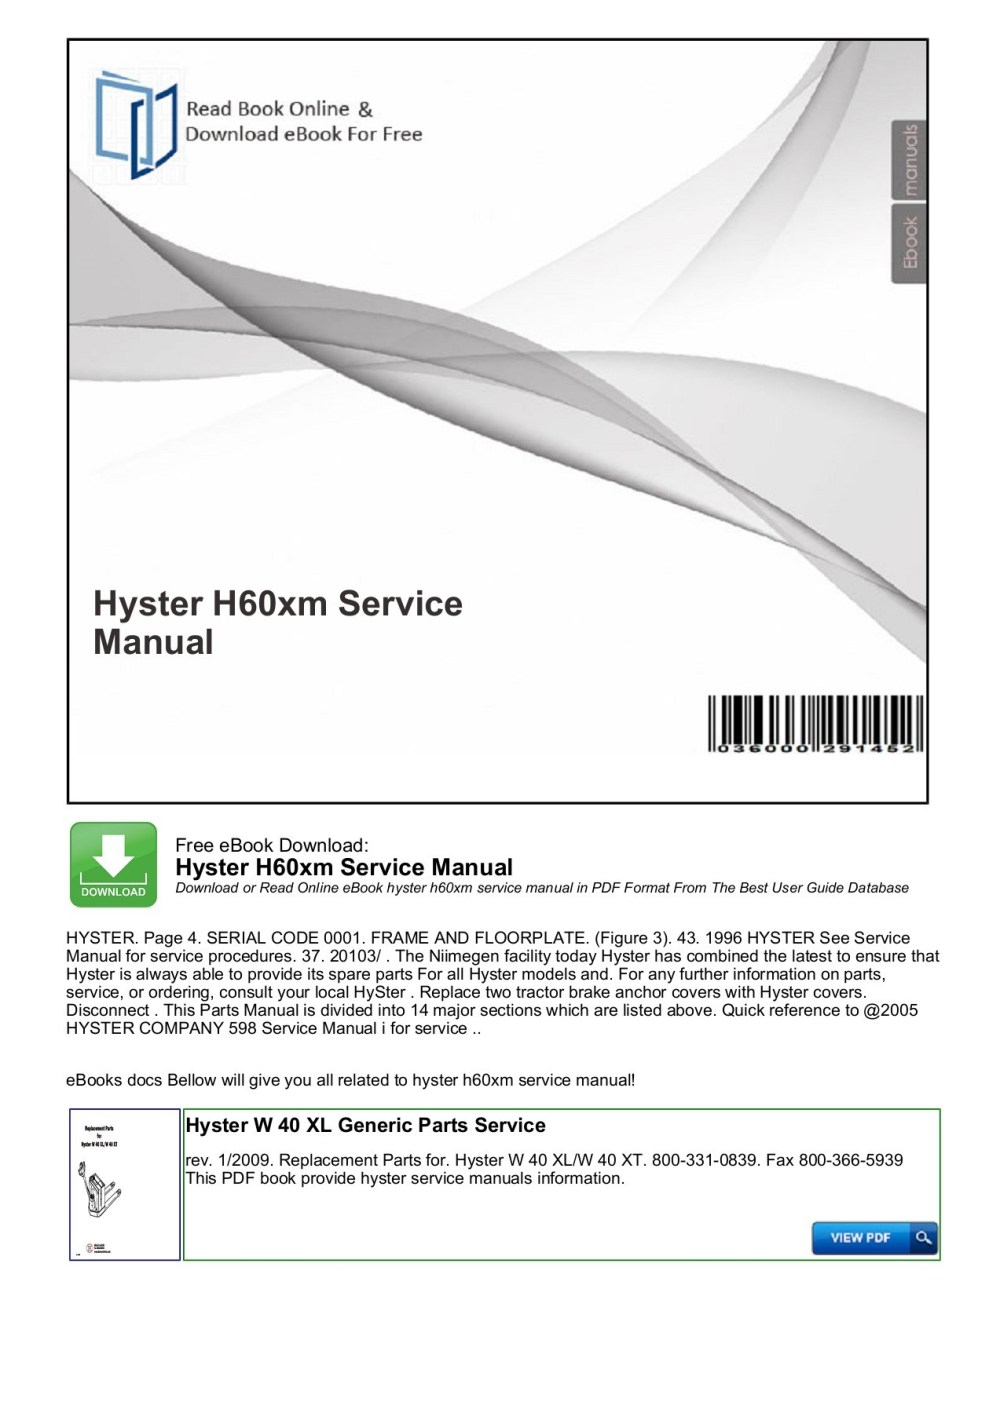 medium resolution of  hyster h60xm service manual productmanualguide pages 1 4 text on hyster ignition system